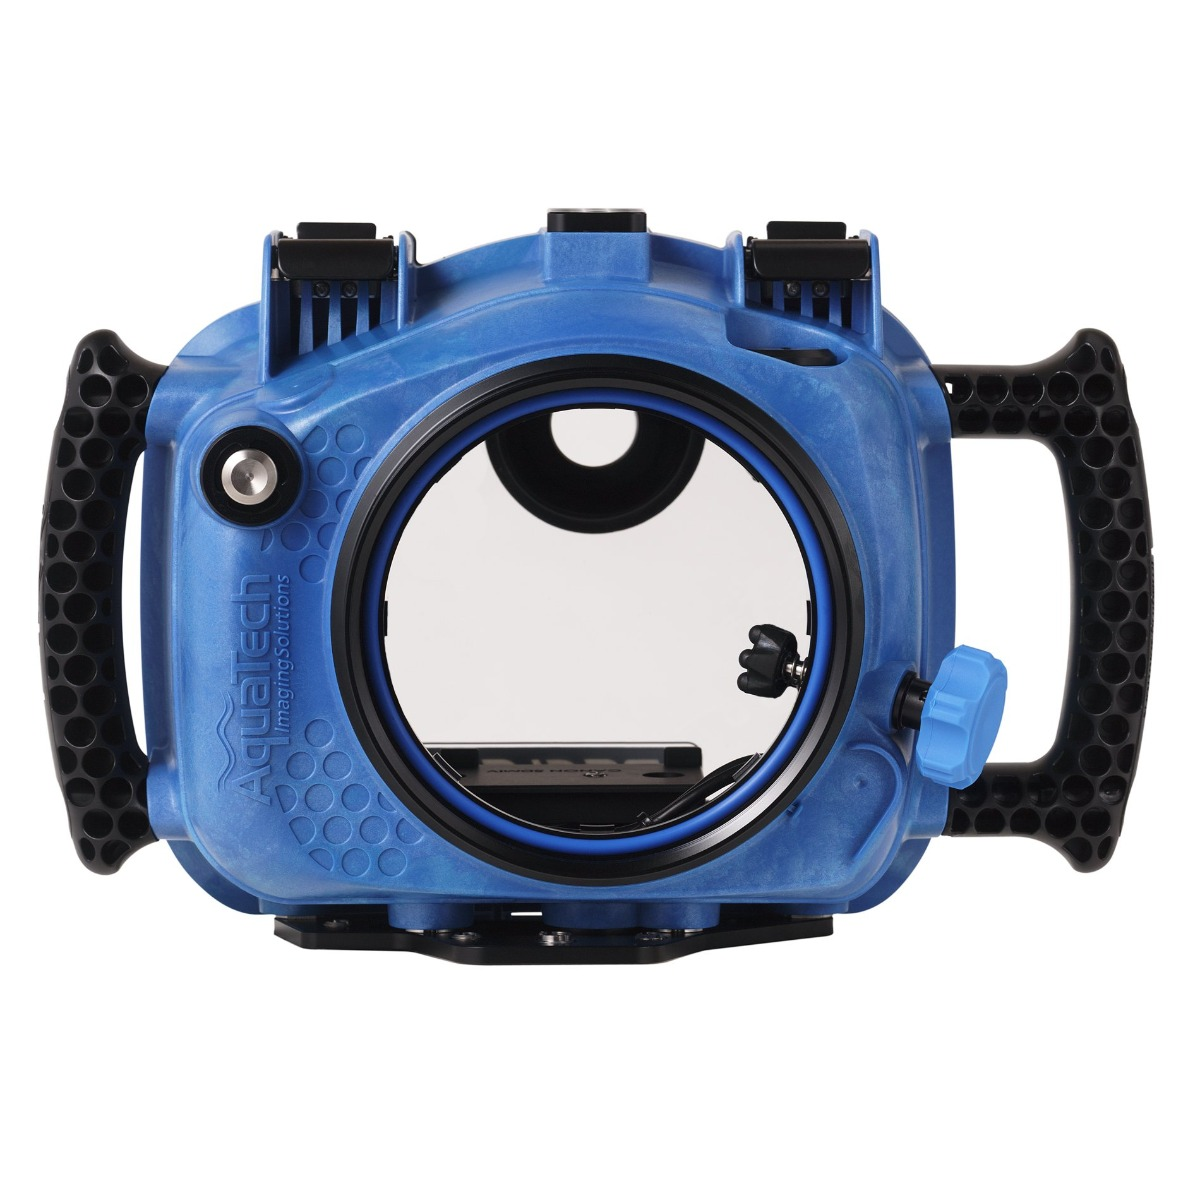 AquaTech Reflex Base Water Housing for Nikon D850